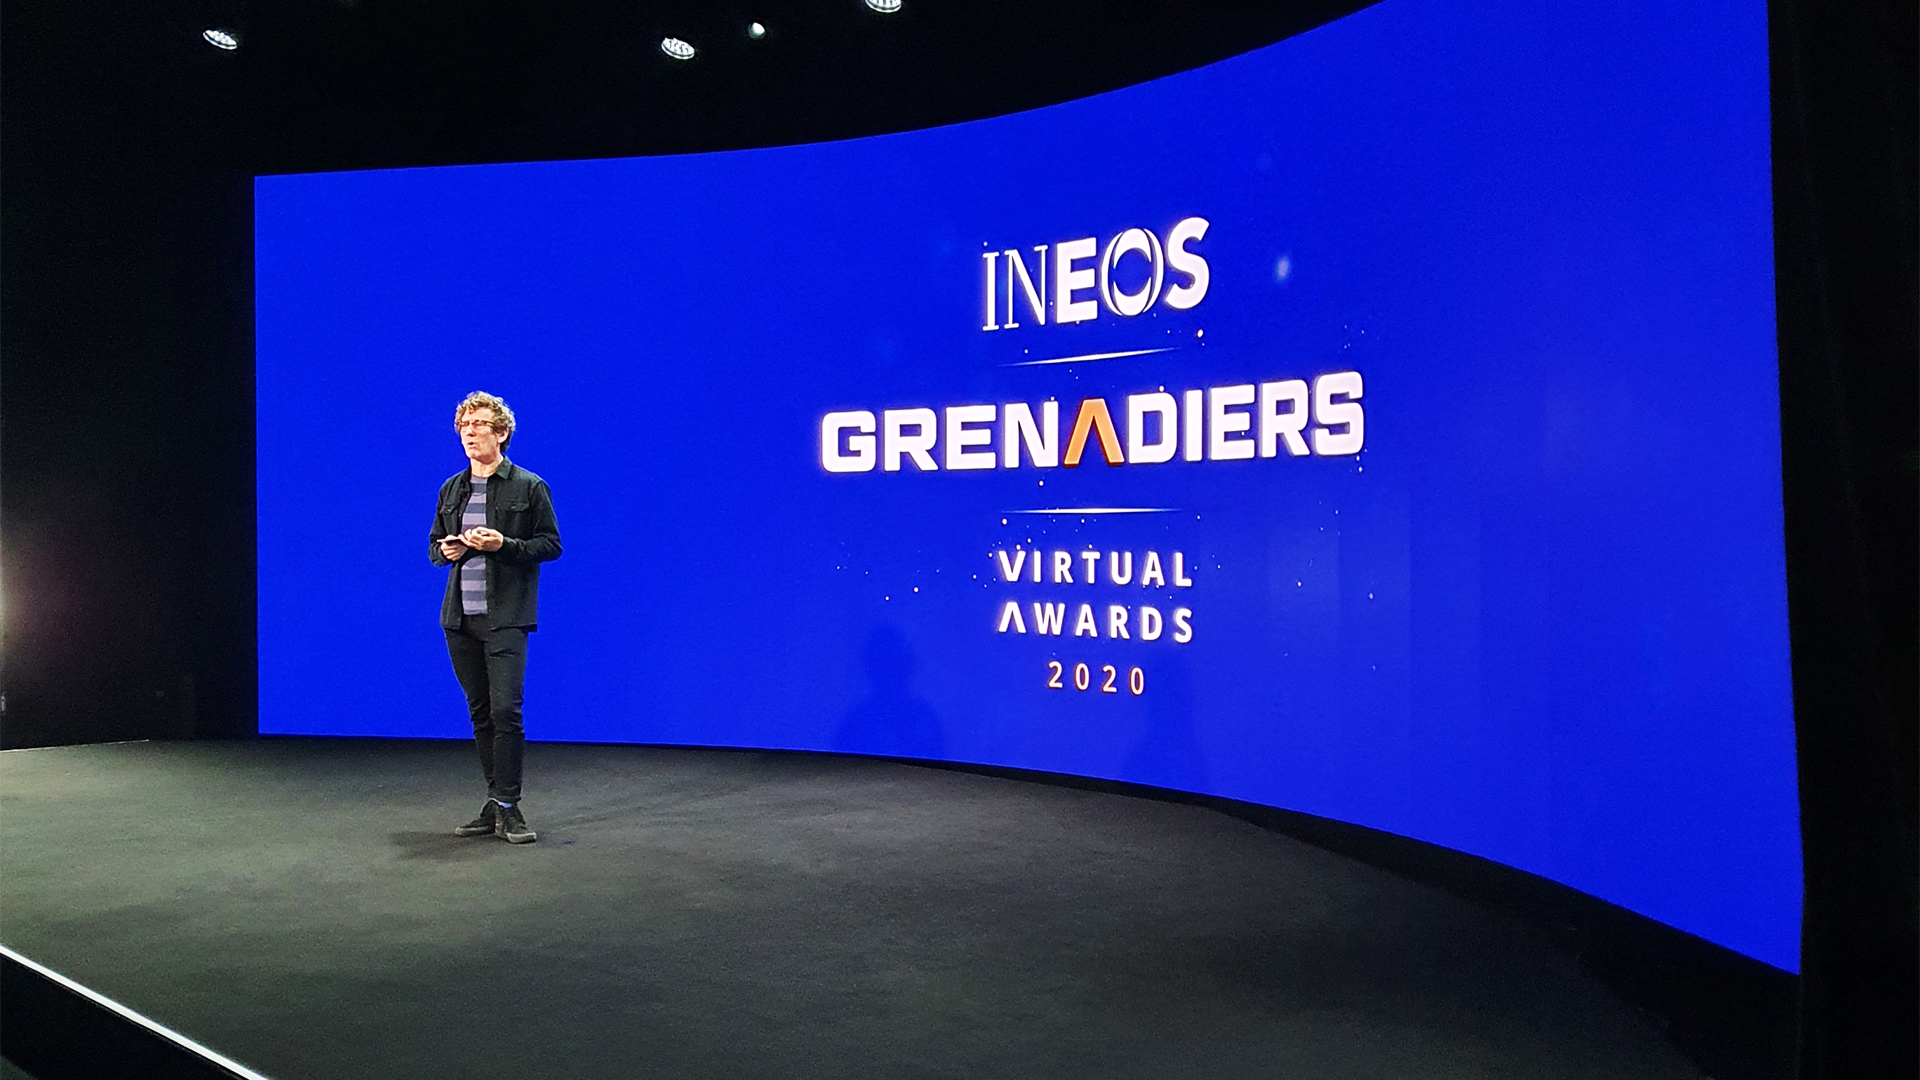 Make Events | Brand Management, Corporate and Virtual Events Company | INOS Grenadiers event